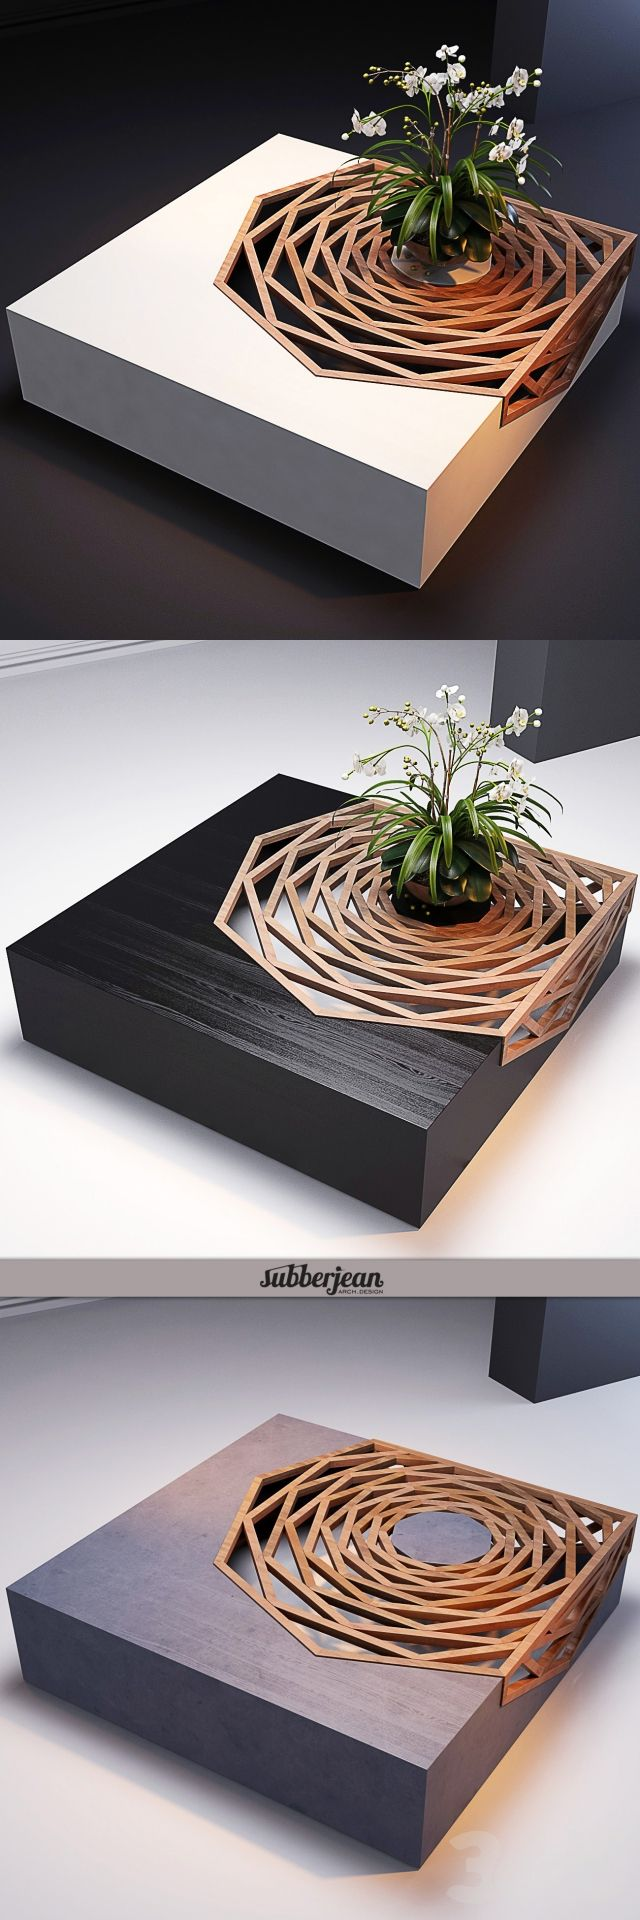 Coffee tables and creative table designs - Gorgeous Design Wood Coffee Table